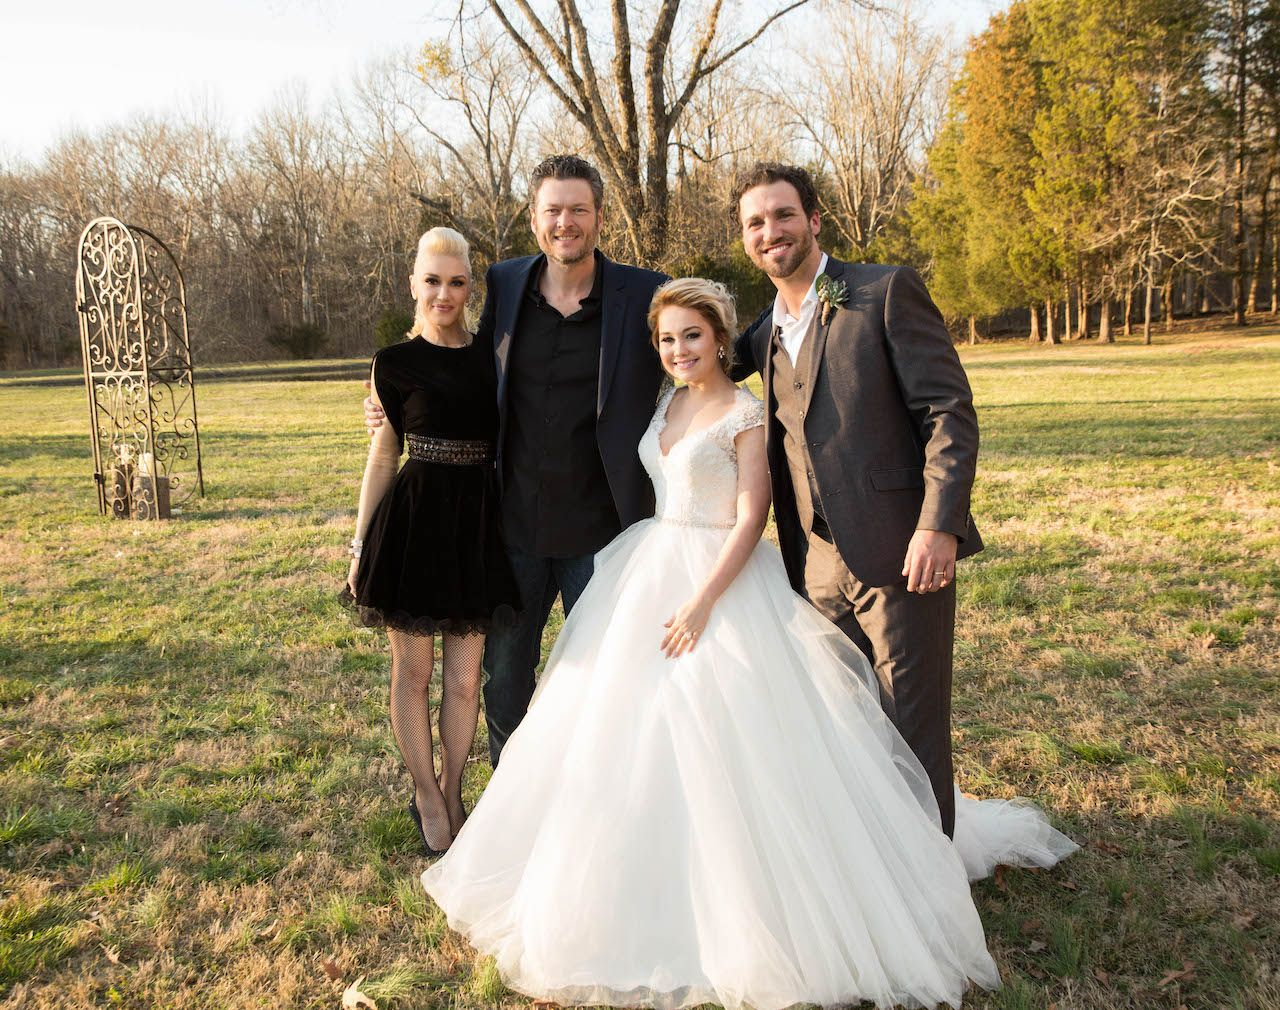 EXCLUSIVE Inside RaeLynn's Whimsical Wedding! See the